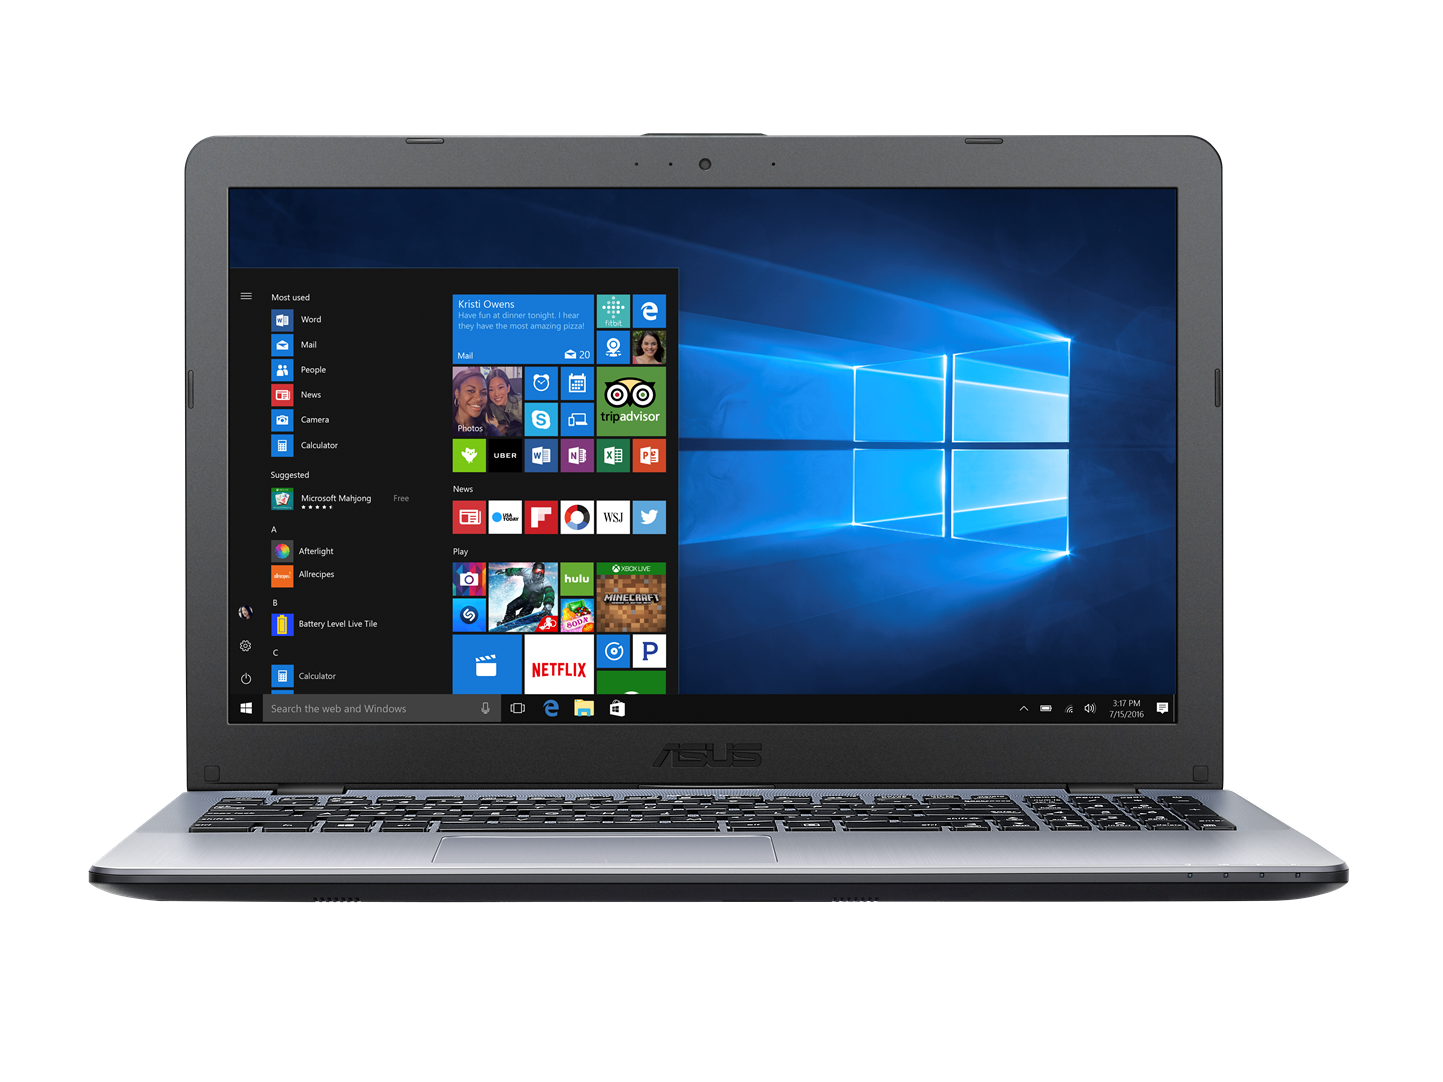 "ASUS X542UQ-DM311T i7-7500U/8GB/256 GB M.2 SSD/GeForce 940MX/15,6"" FHD matný/BT/W10 Home/Grey/Silver"